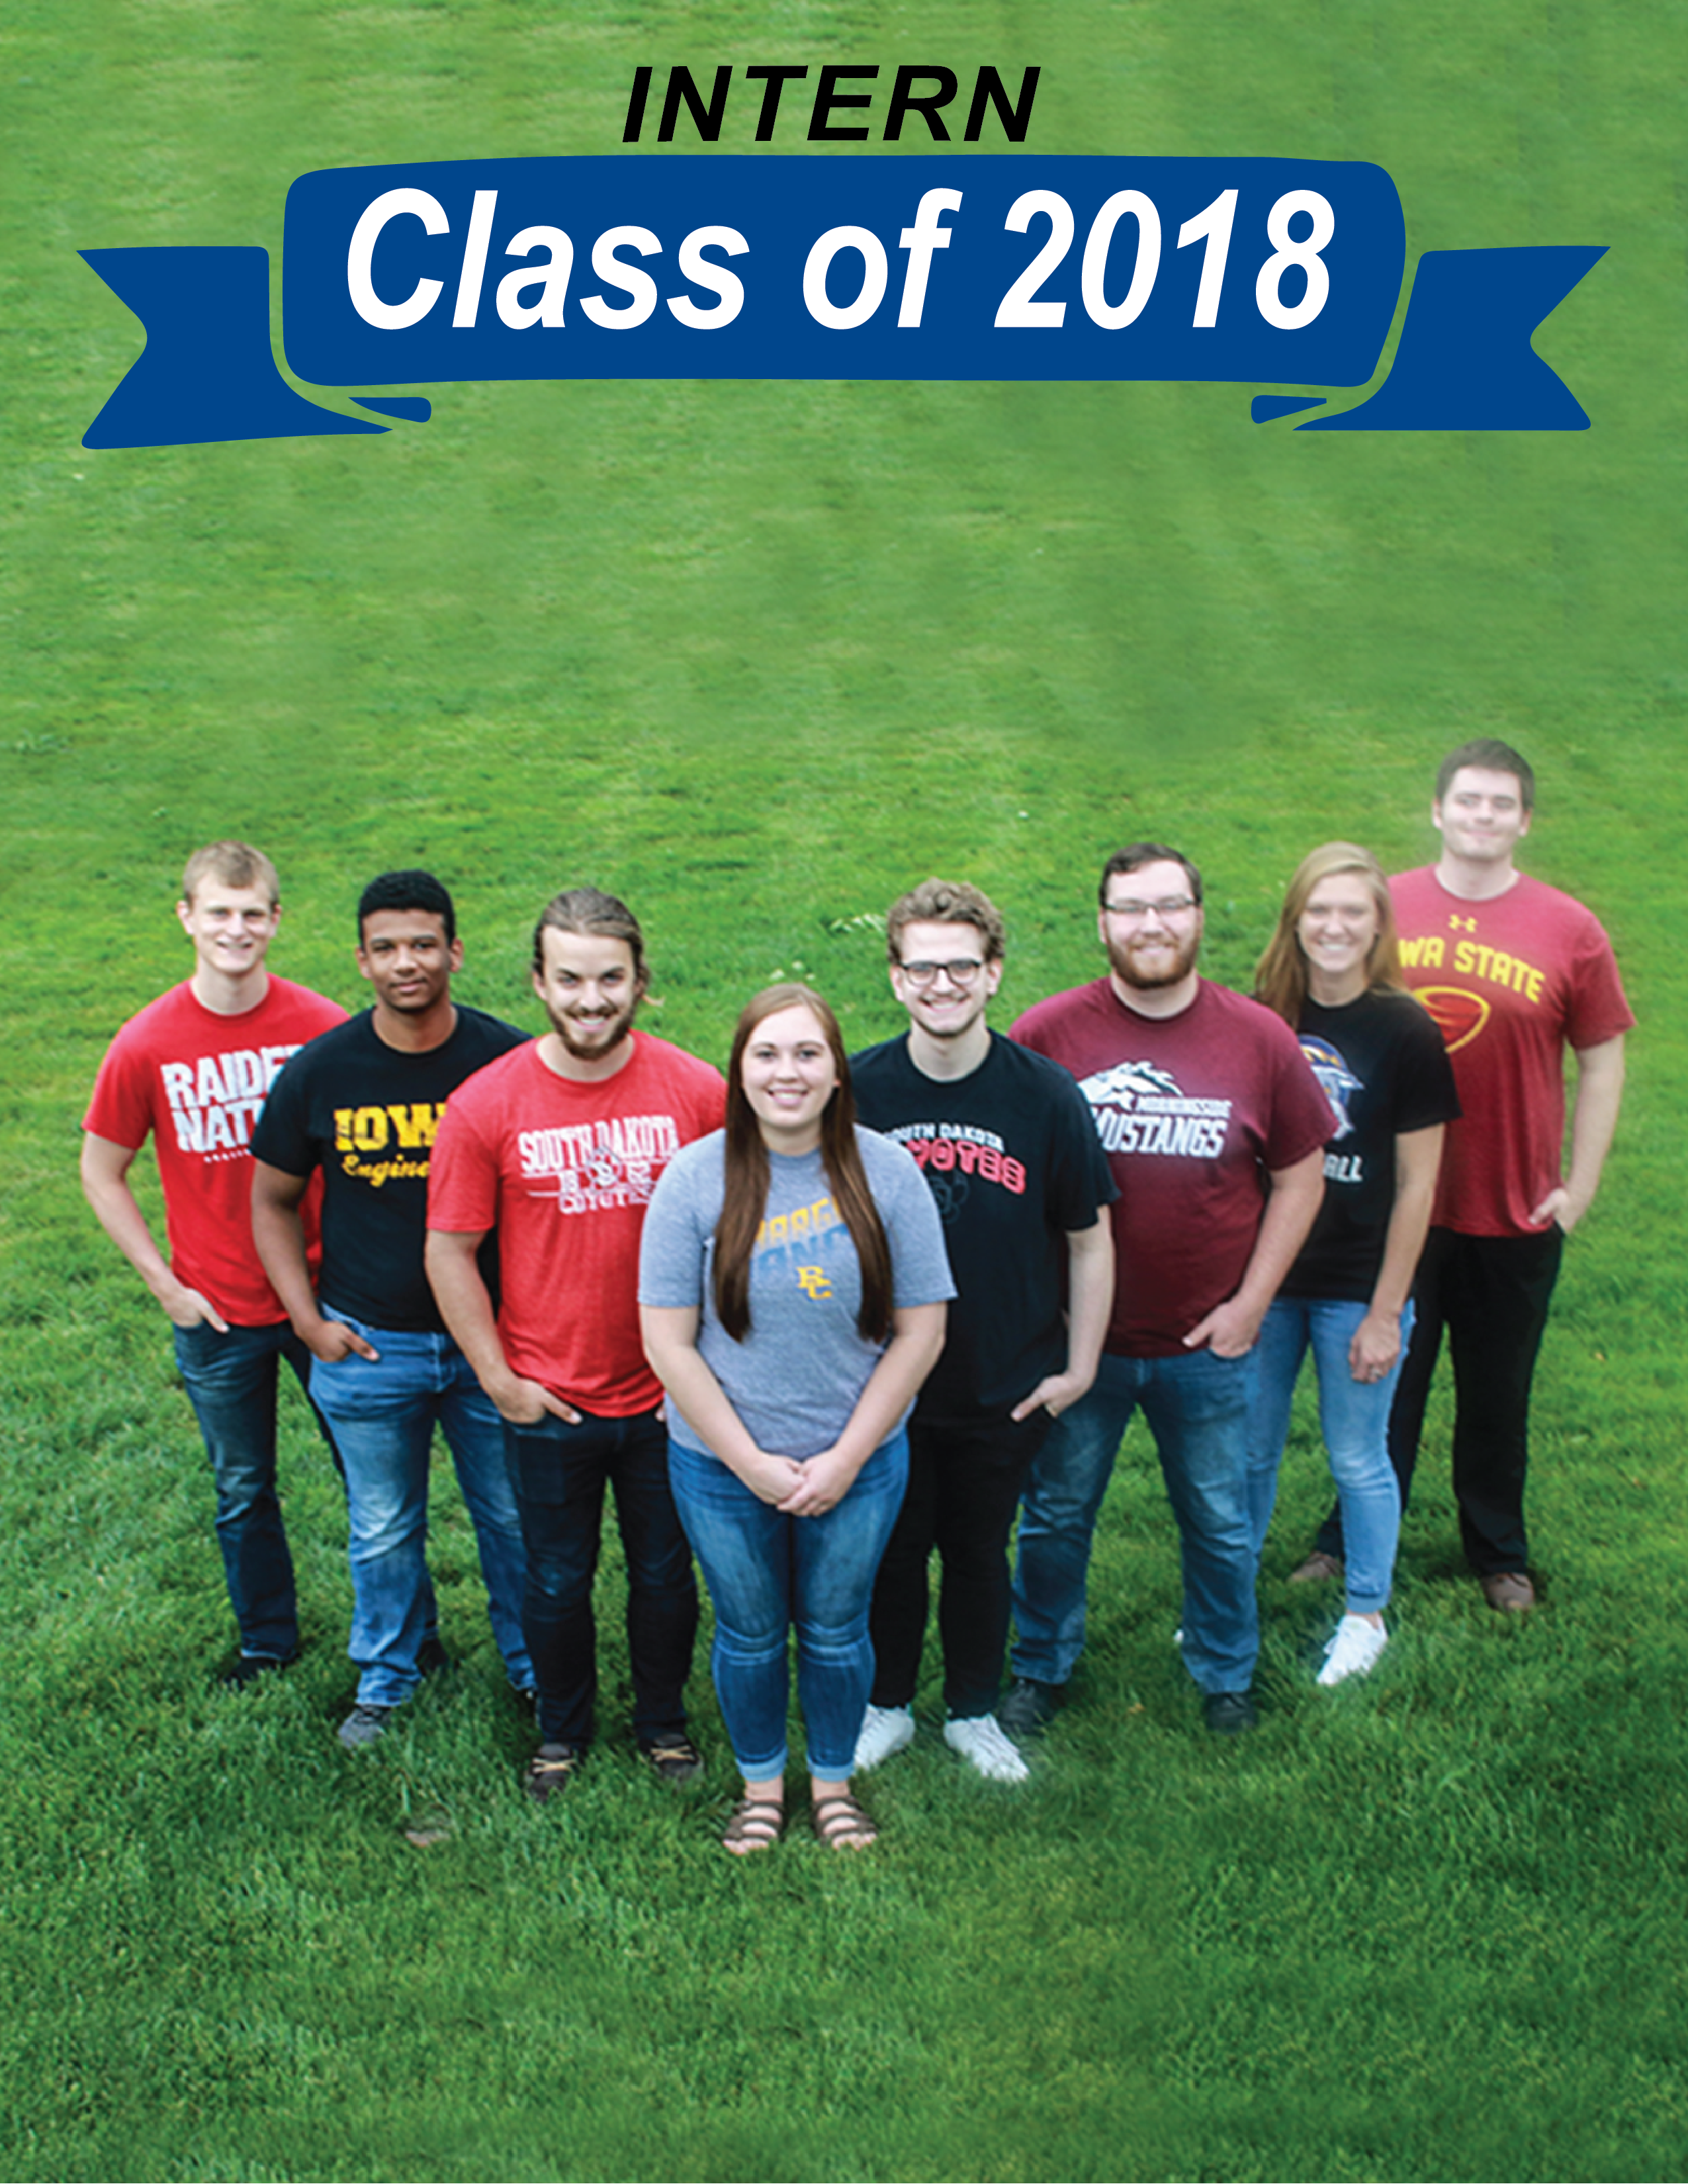 Great West Casualty Company Intern Class 2018